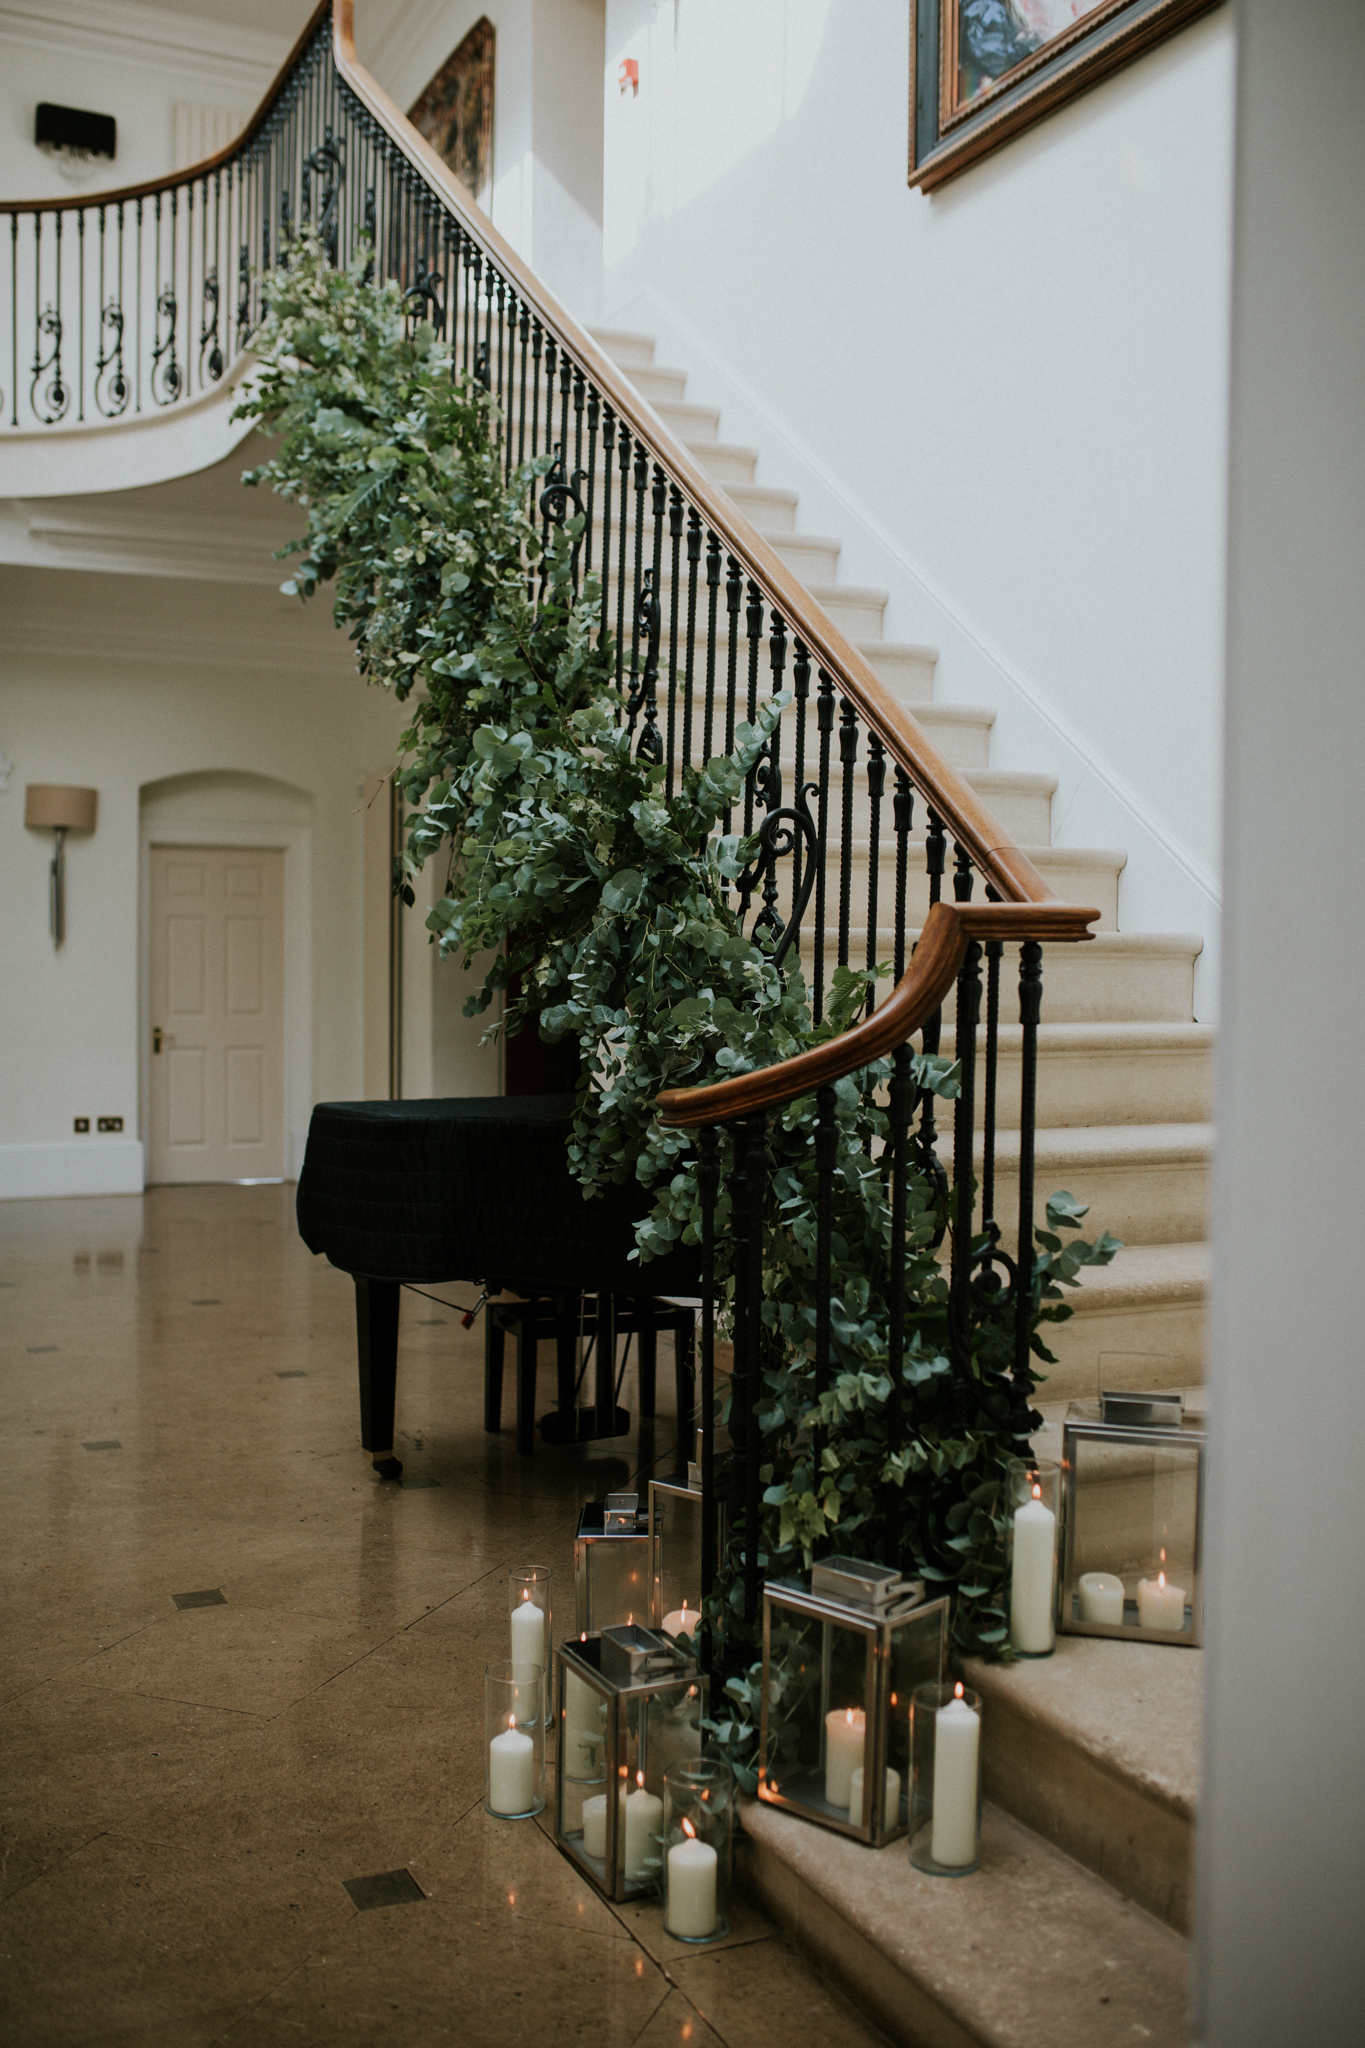 foliage-only stair garland wedding flowers